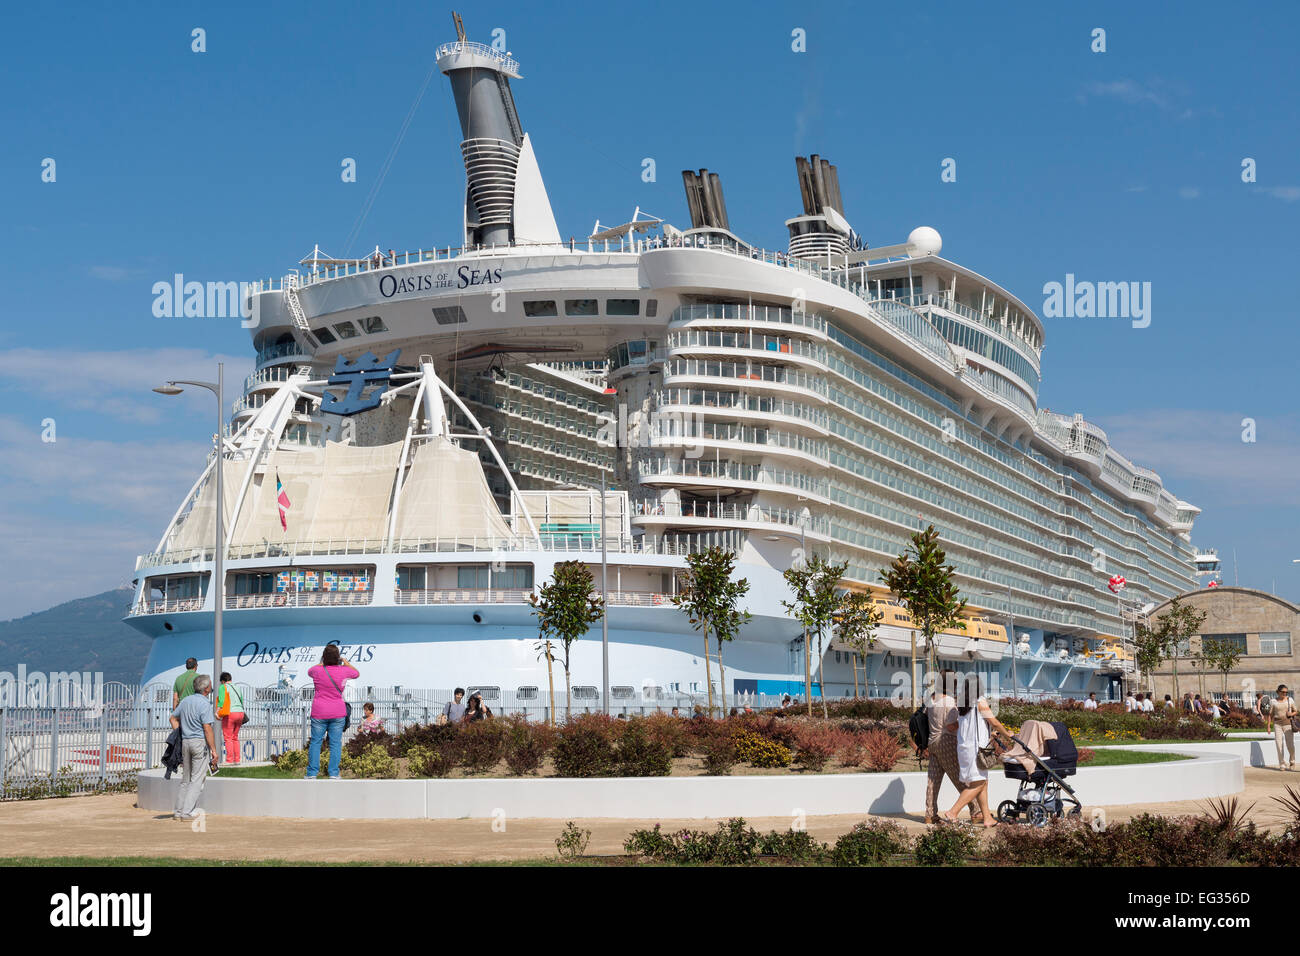 Oasis of the Seas at Vigo during her 2014-visit in Europe. - Stock Image